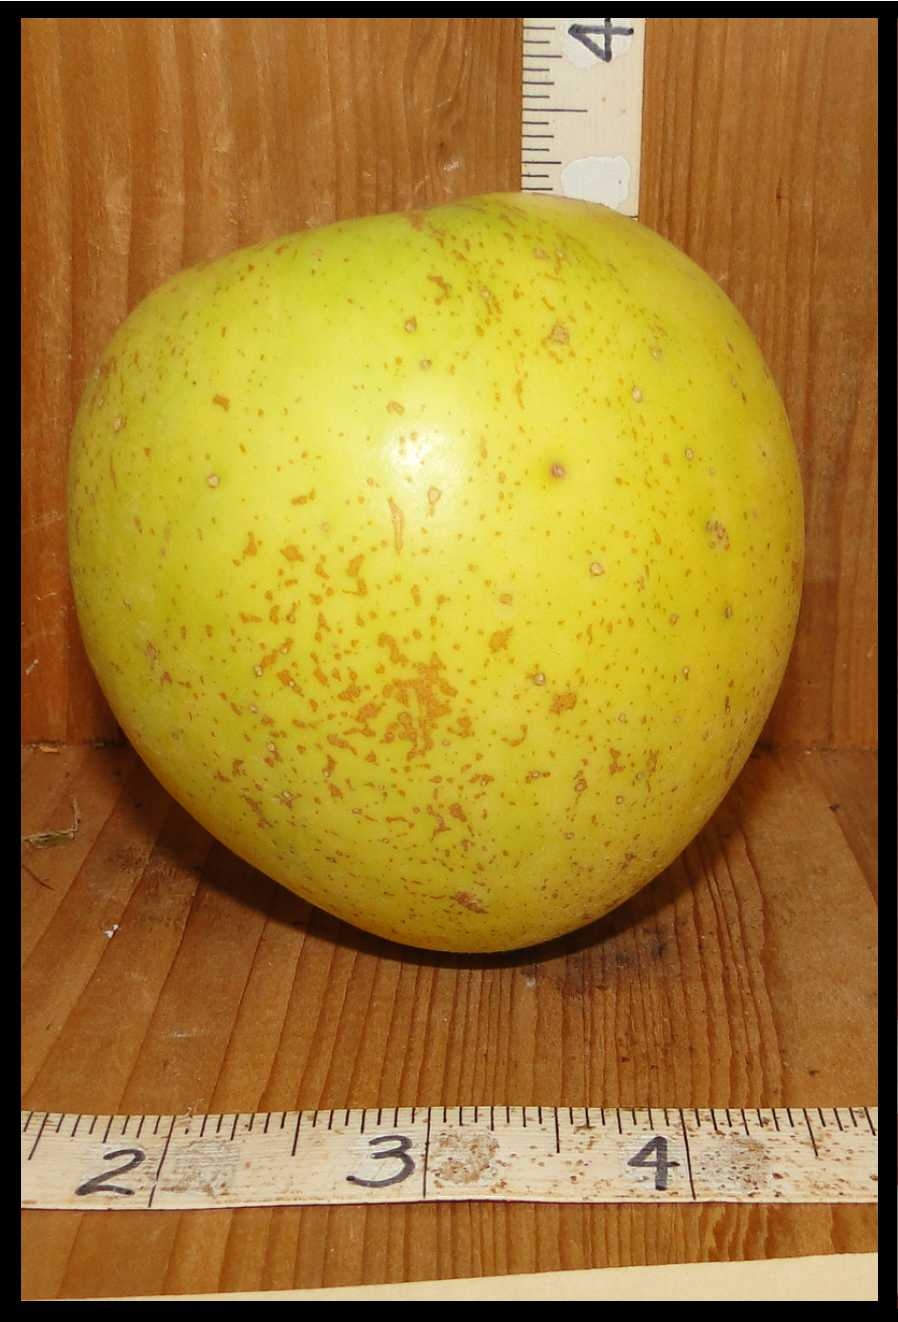 yellowish green apple with medium brown spots